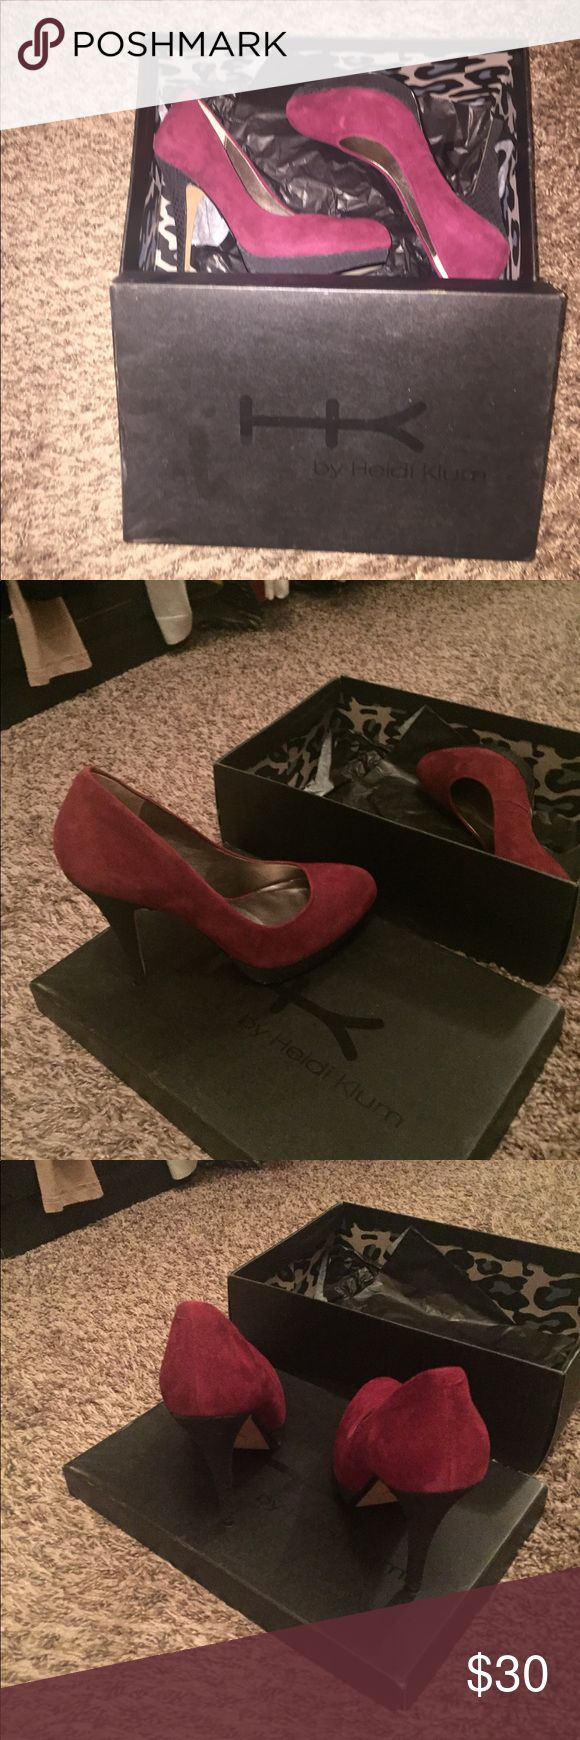 HK by Heidi Klum platform pump Only worn one time to a Christmas party. Heel height is 4.25 with .75 platform. Burgundy and black Heidi Klum Shoes Platforms